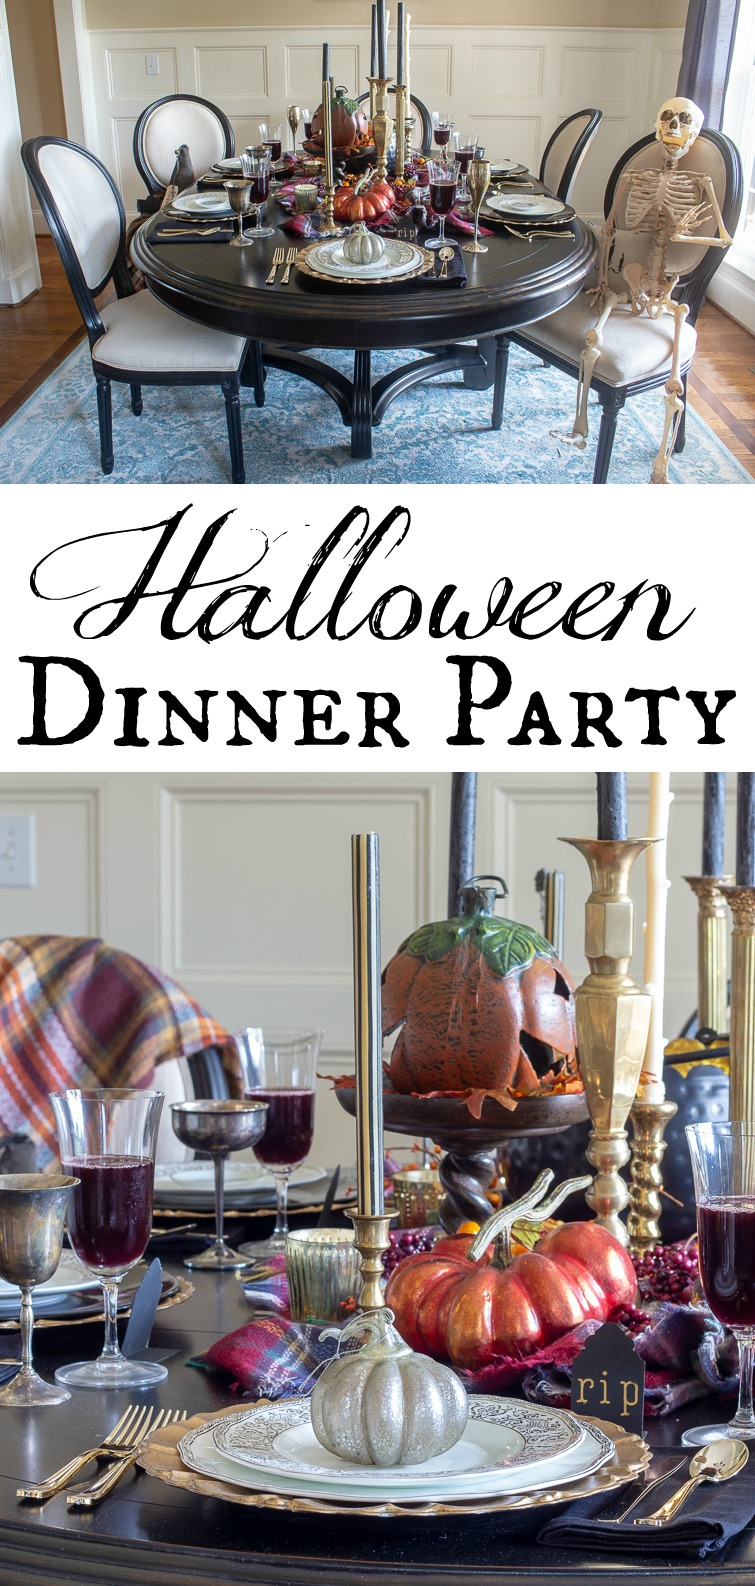 collage photo showing a dining room table set for Halloween with fine china and elegant brass candlesticks